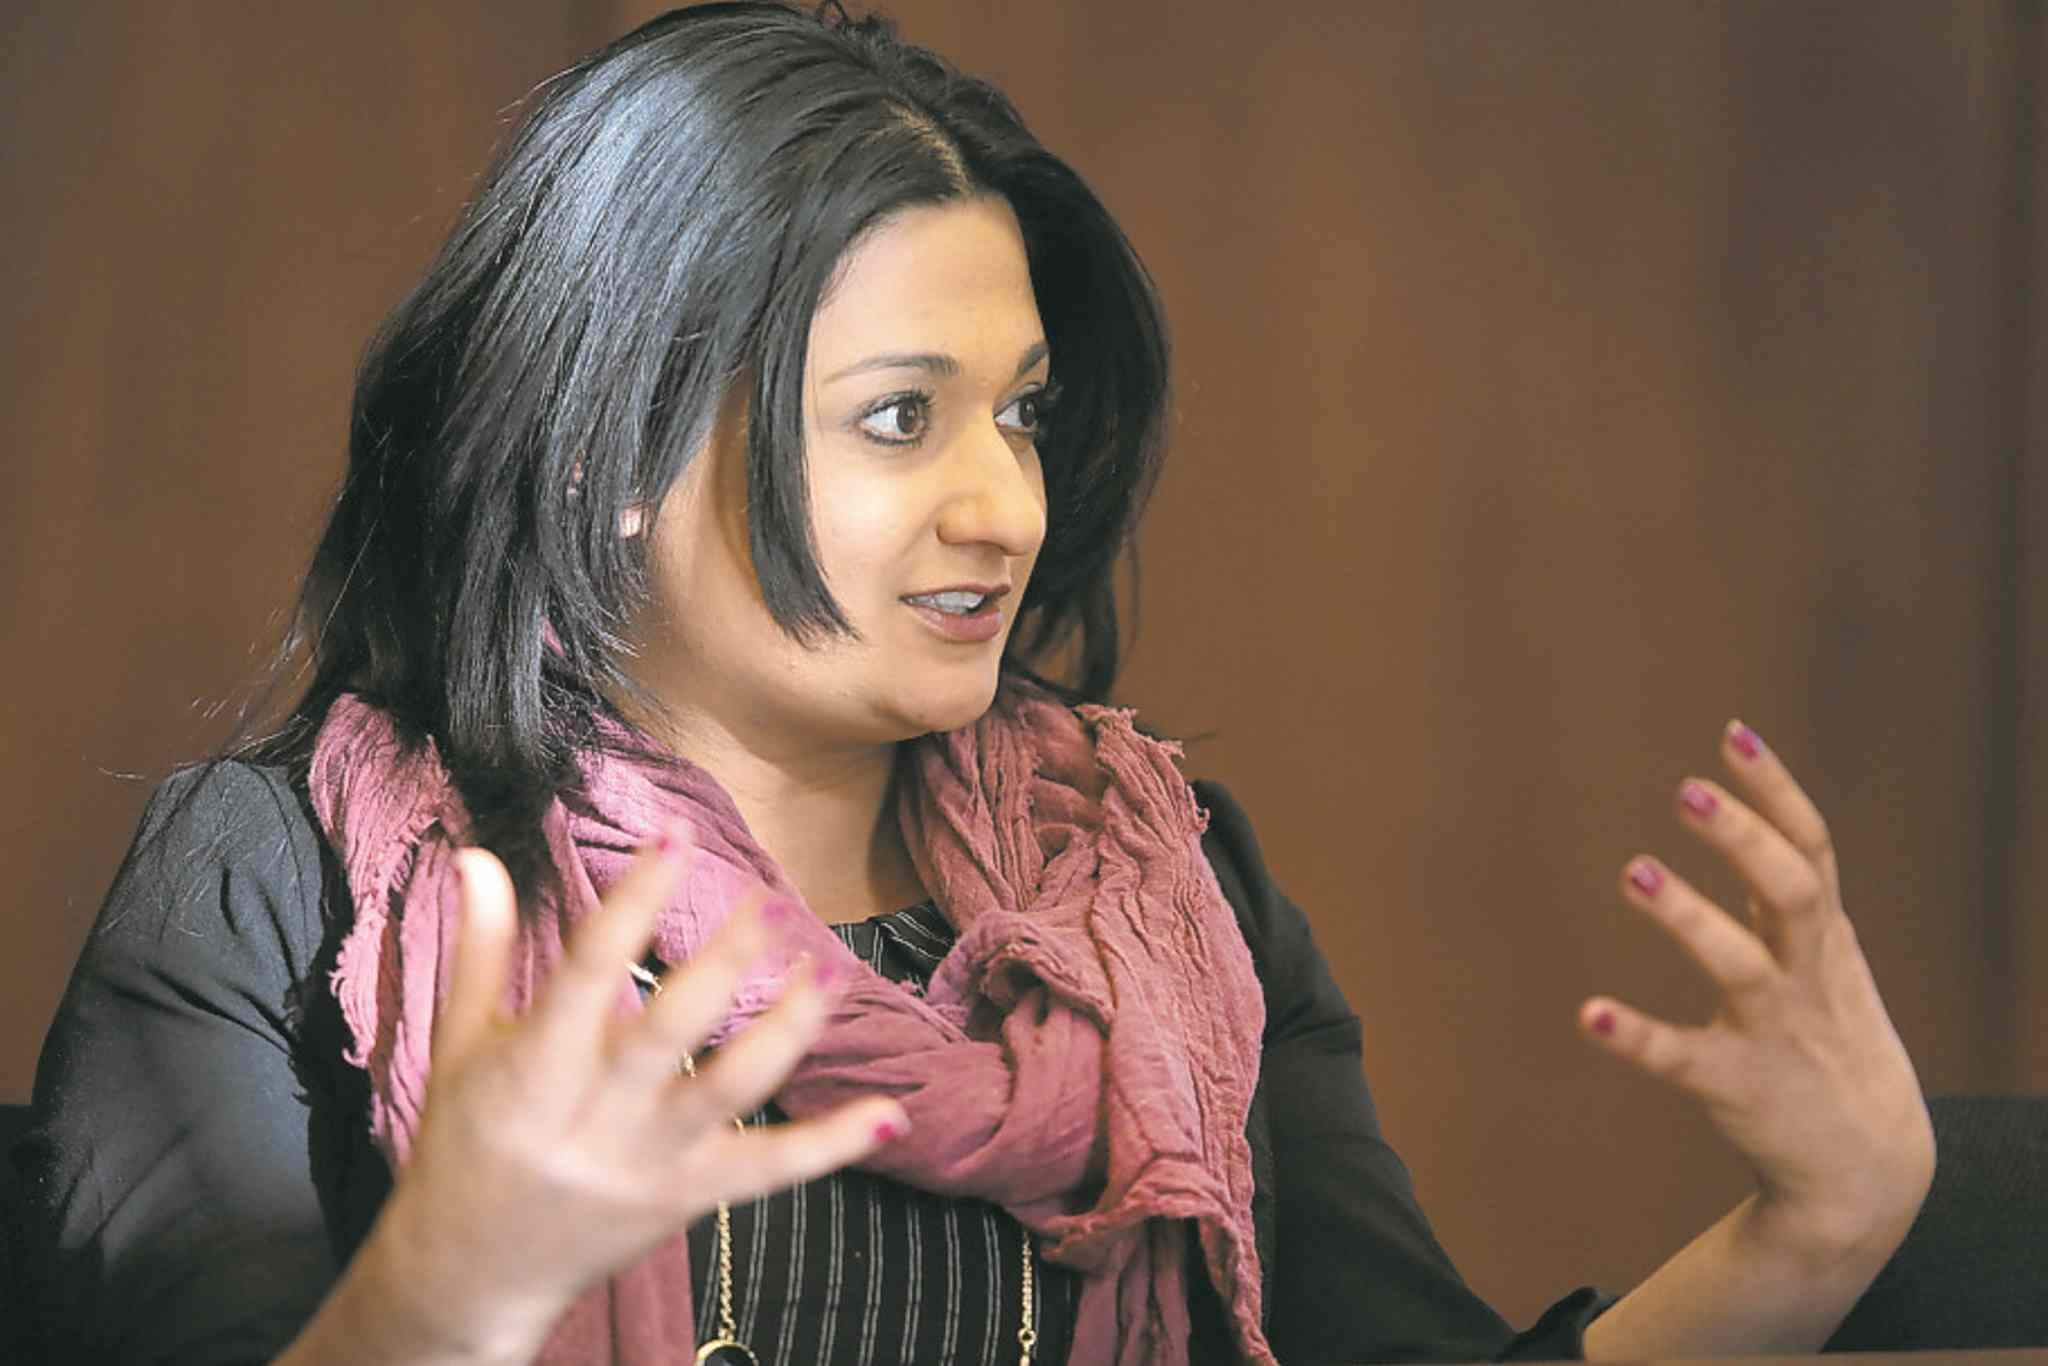 Manitoba Liberal Leader Rana Bokhari speaks with the Brandon Sun editorial board in 2015. (Bruce Bumstead / Brandon Sun files)